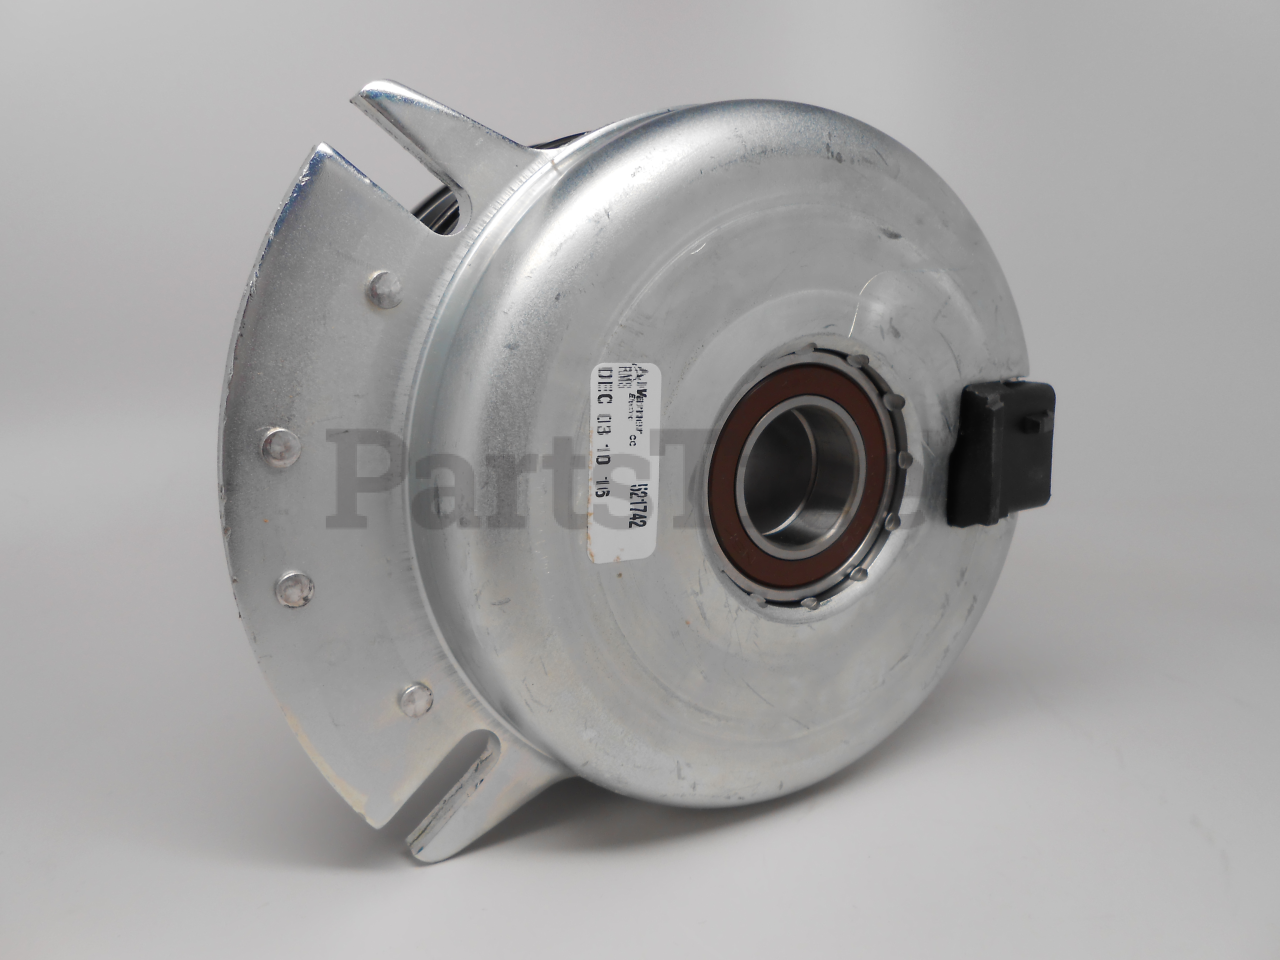 129 Cub With Snow Blower Pto Pulley : Cub cadet part b clutch elec pto partstree